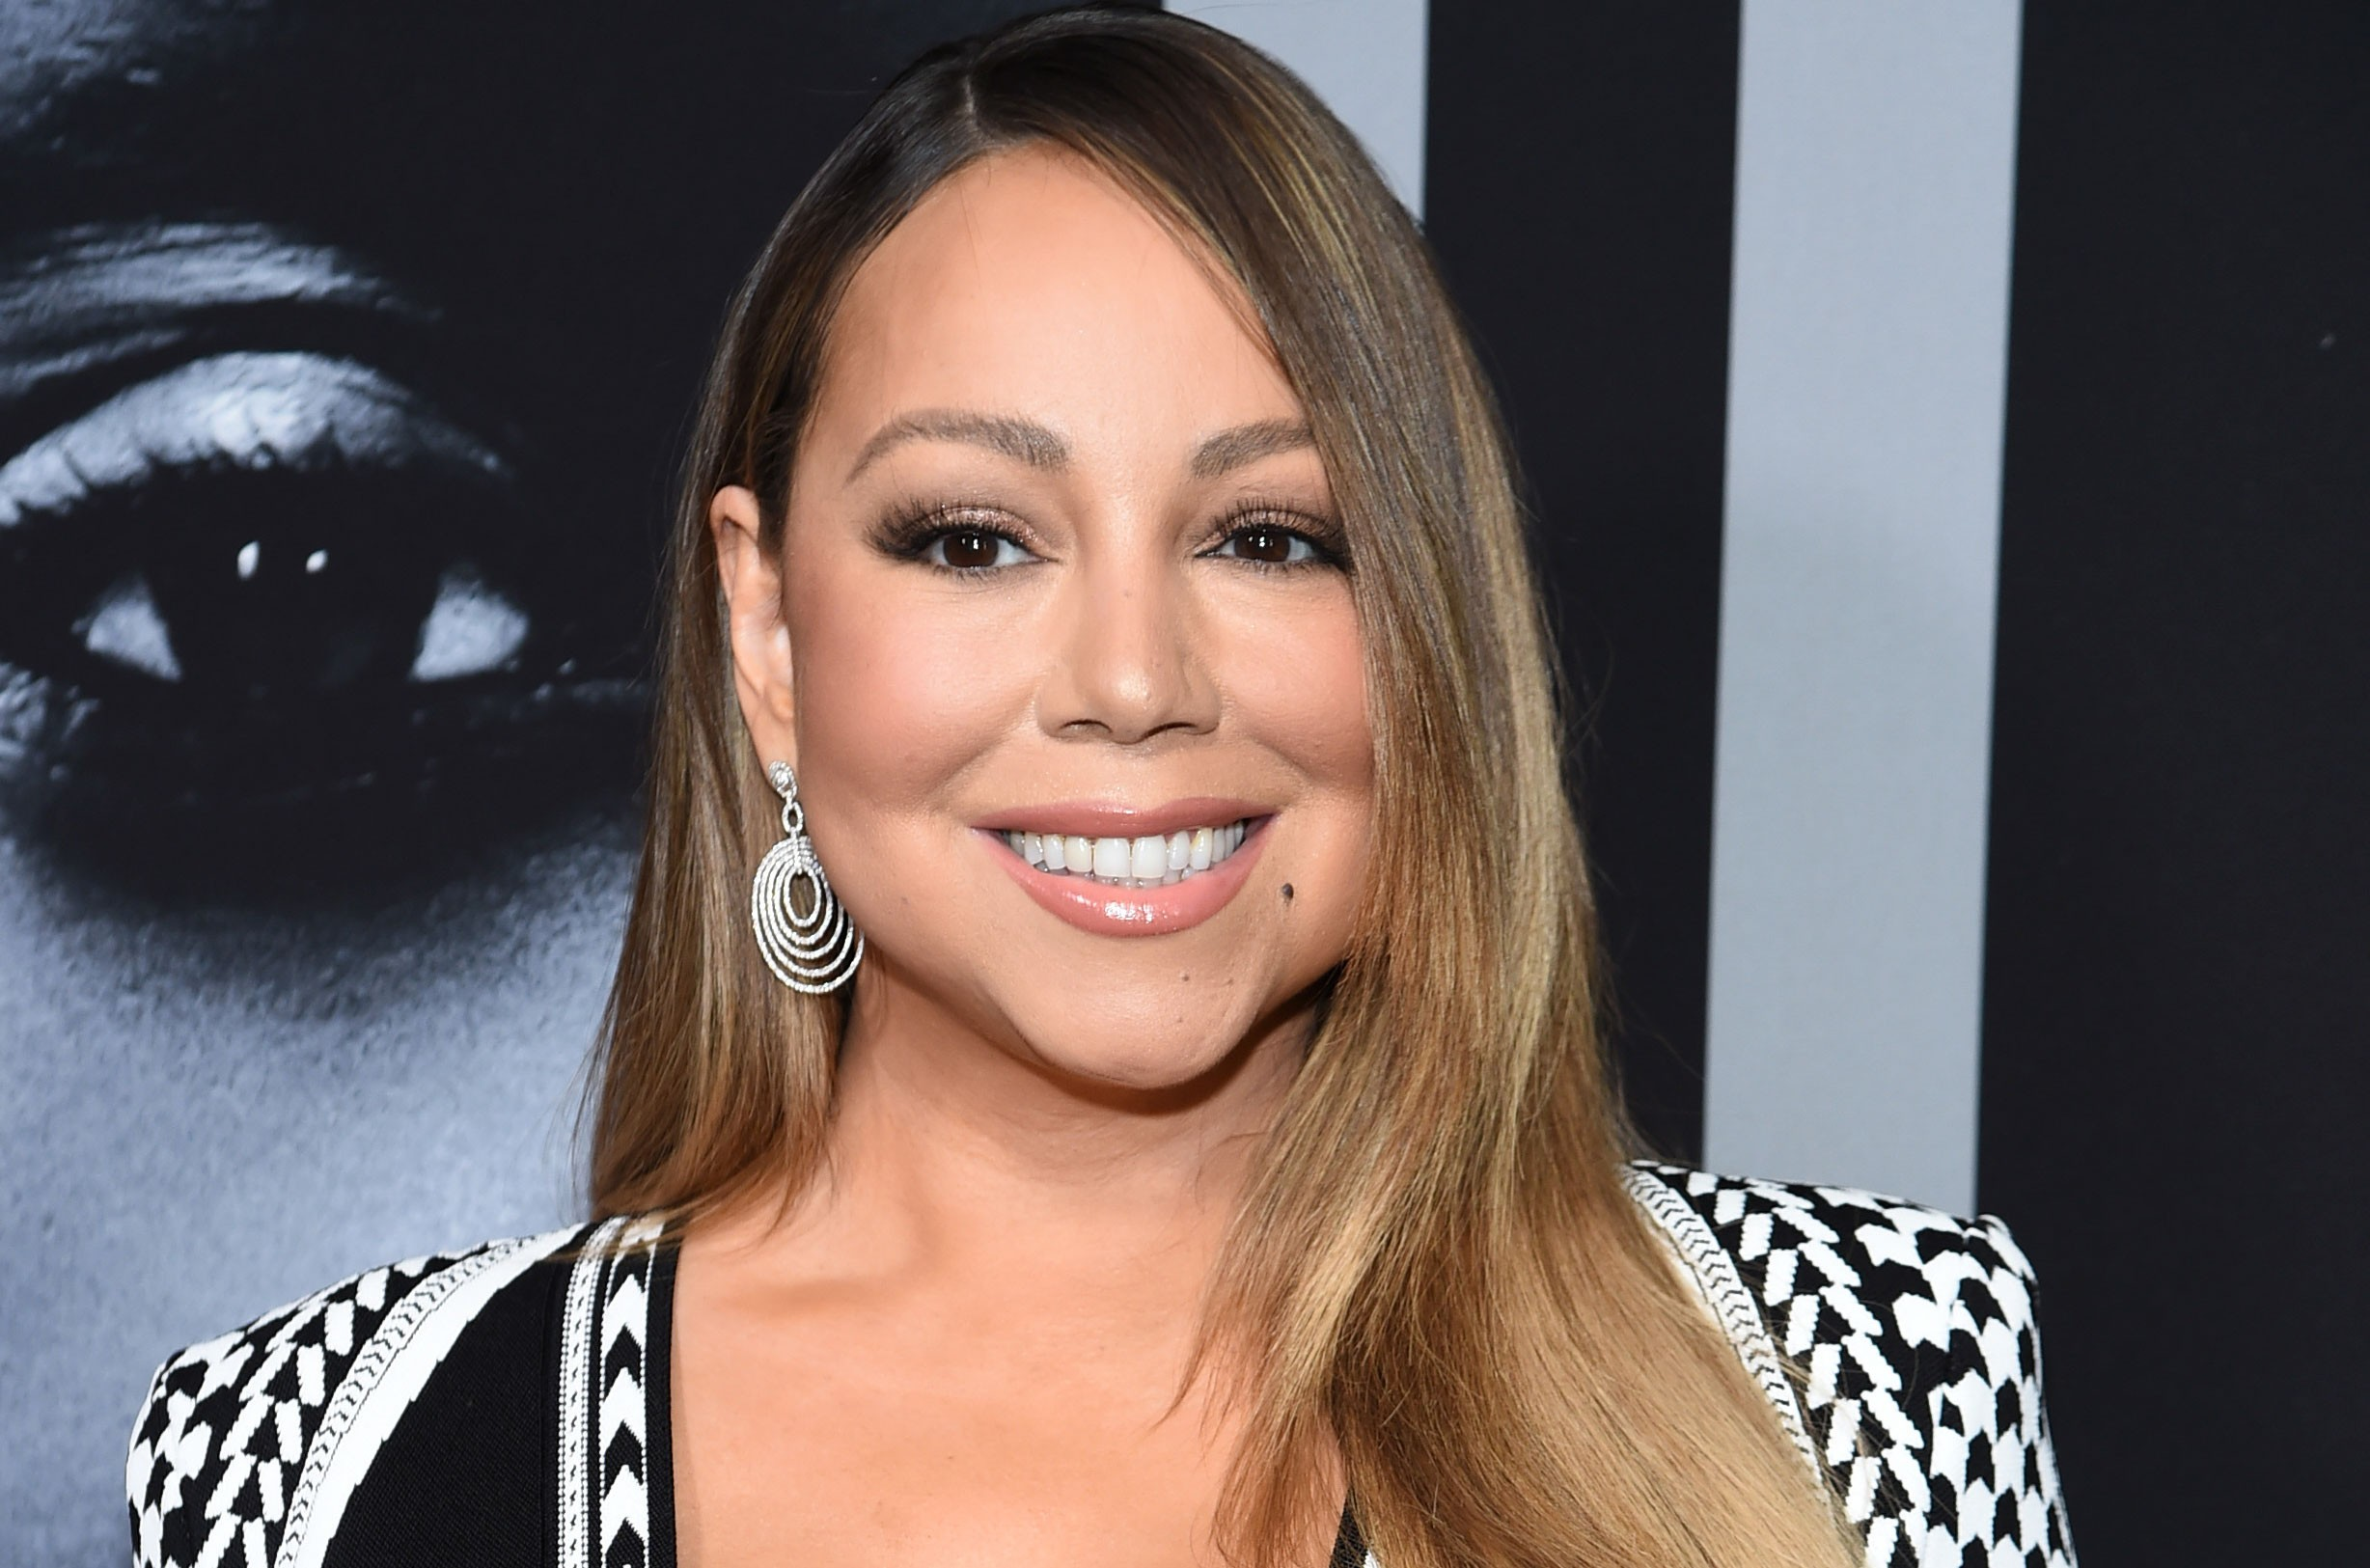 Mariah Carey's Brother Sues Over Emotional Distress Caused By Her Memoir